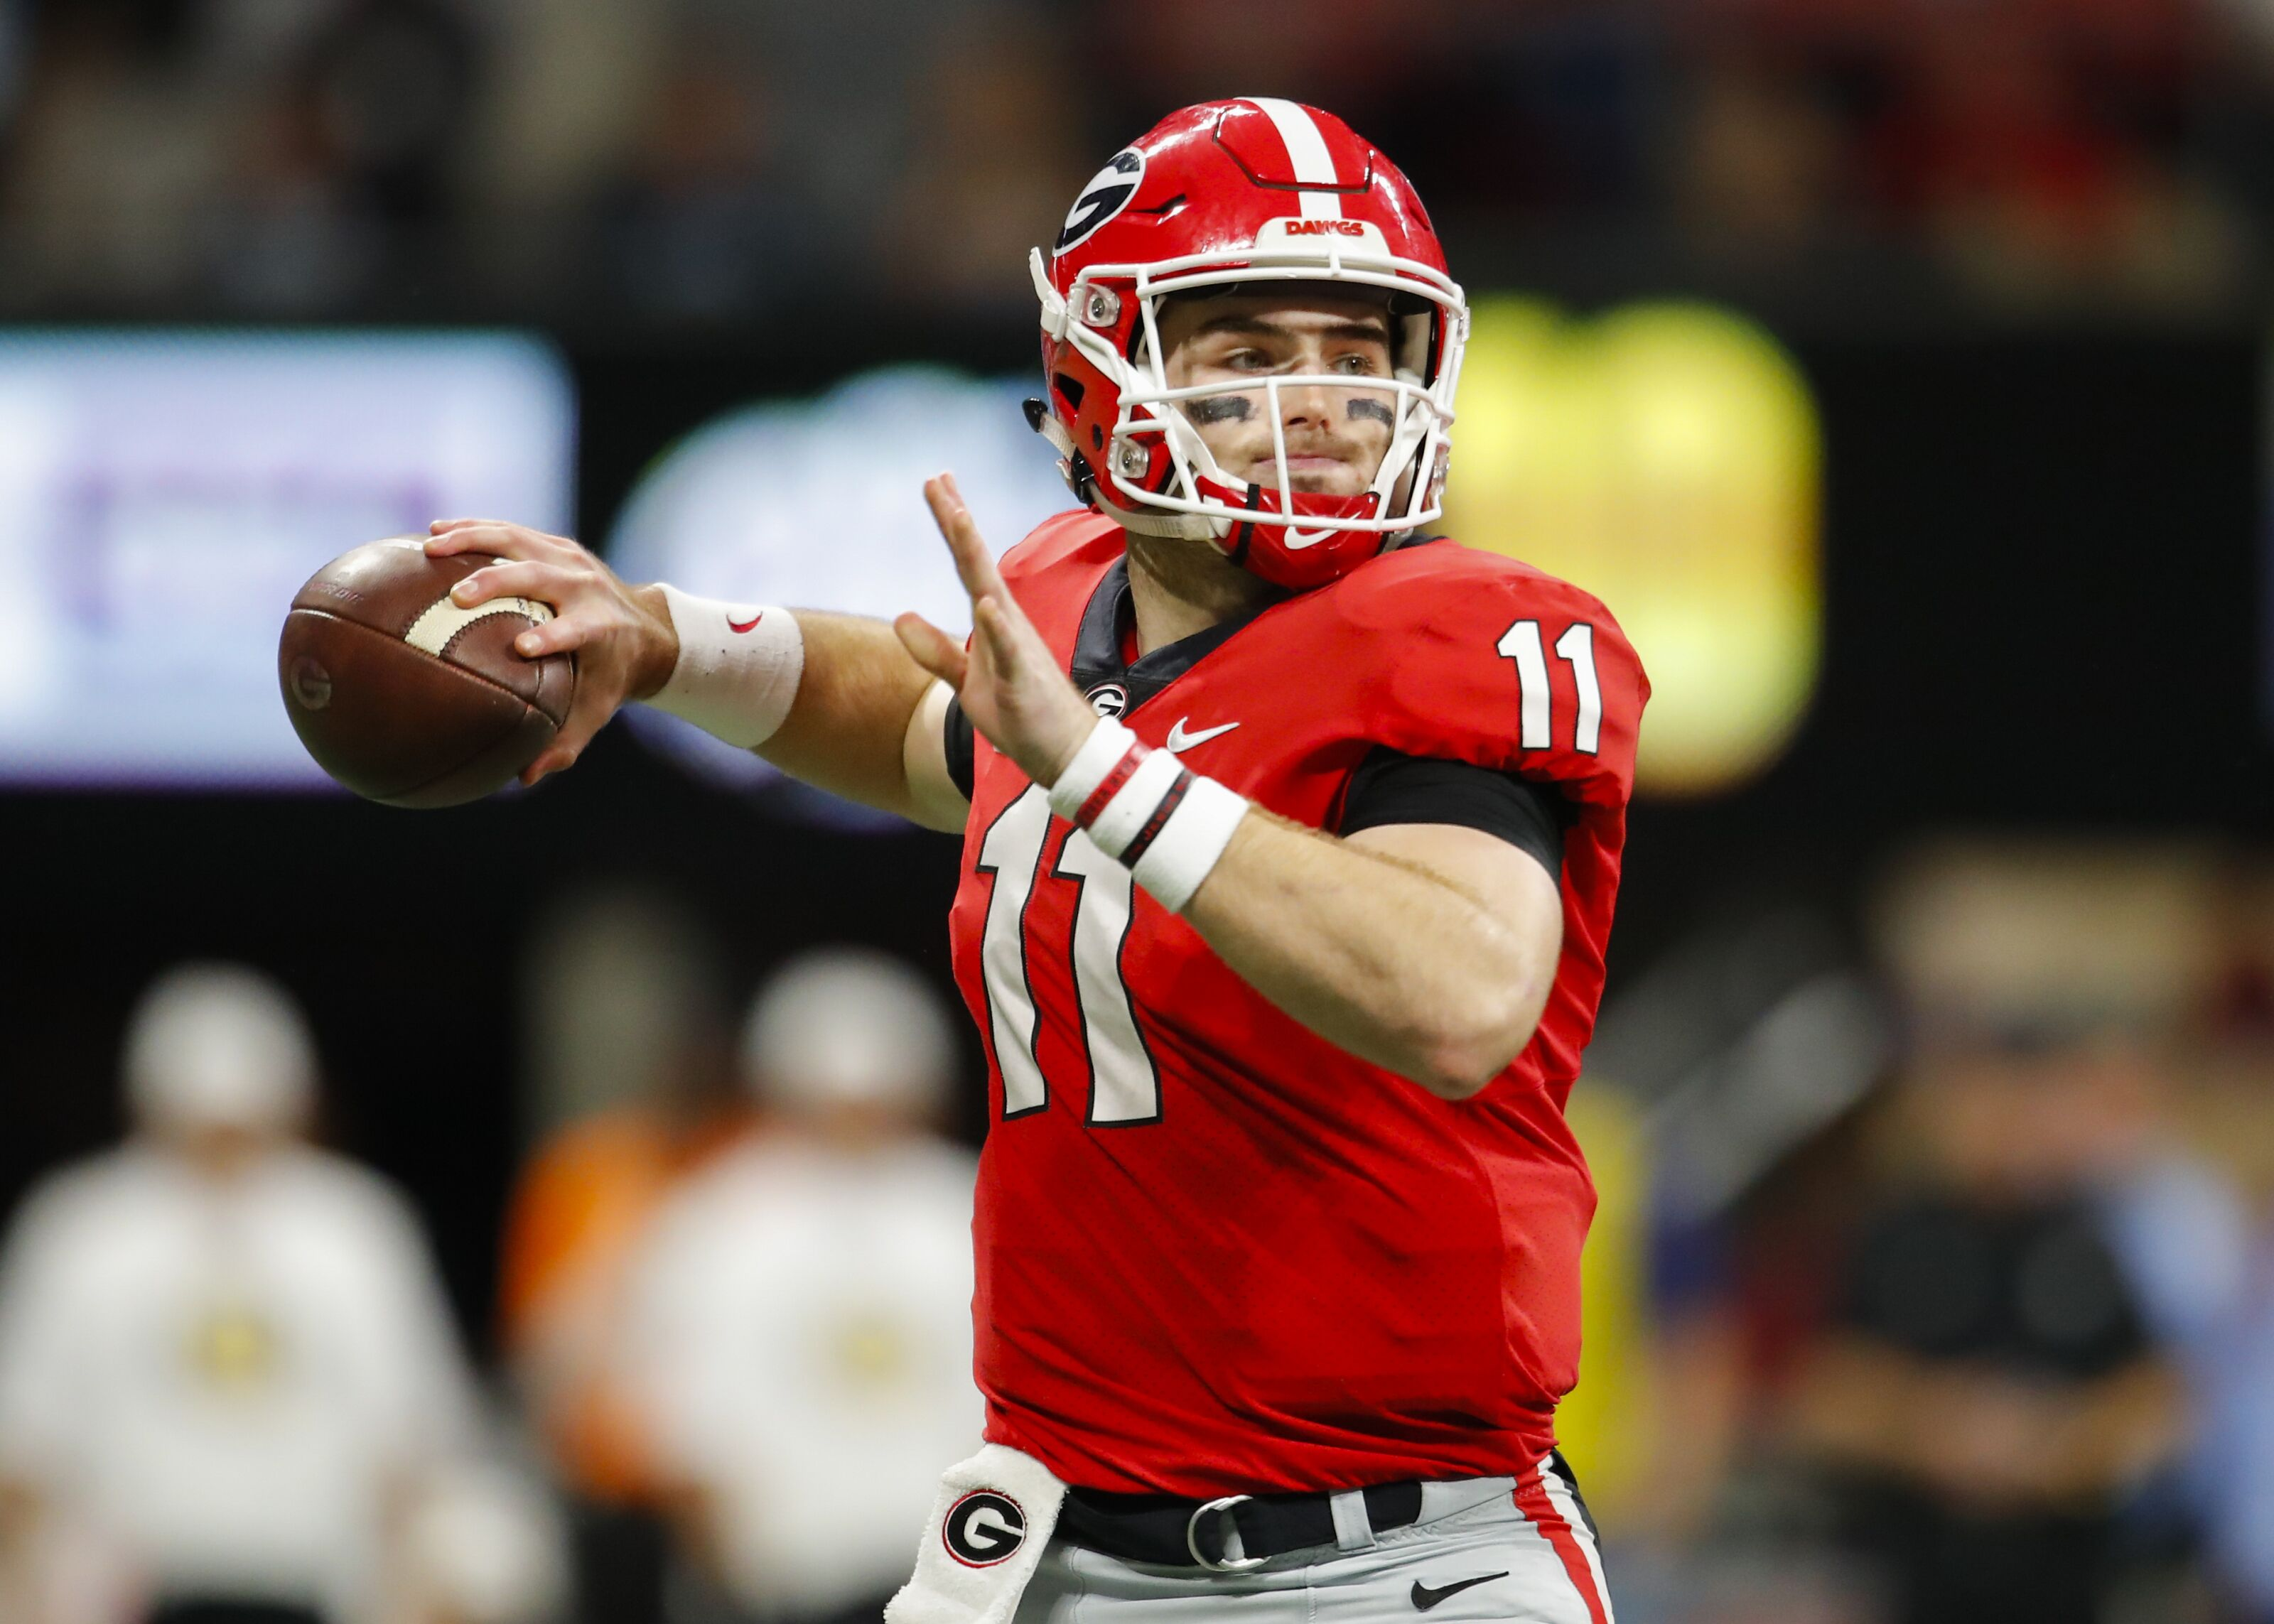 SEC football 2019 season preview: Has Georgia closed the gap on Alabama?